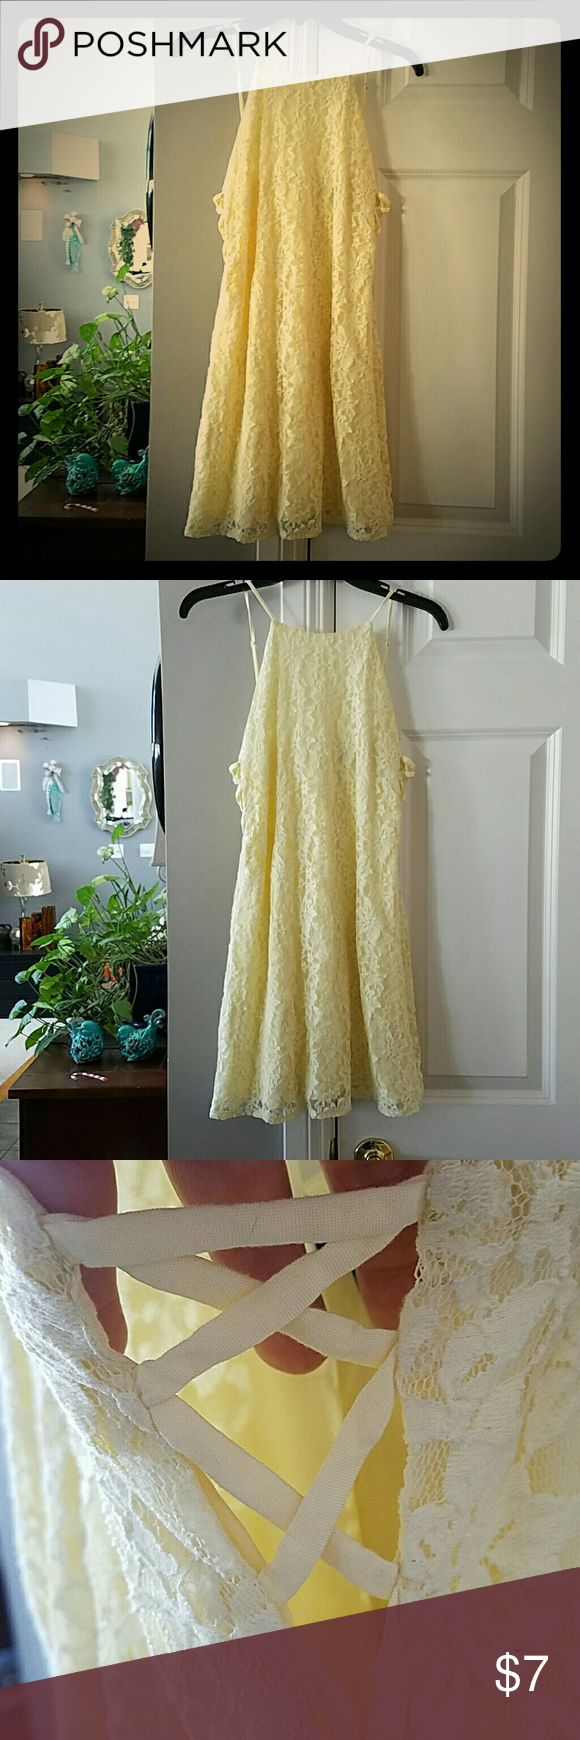 Forever 21 Rich Deep Creamy lined lace open back Worn Once! Perfect condition, Forever 21 Delightful Dreamy Cream Color Summer, Springfield, even Christmas with an sweater or jacket! Open back with corset sides,will make you NOTICED IN A GOOD WAY!  #GREATDEAL  #SPARKLENSHINE  #UWILLLOOKMARV  #ONLYUWILLHAVE Forever 21 Dresses Backless